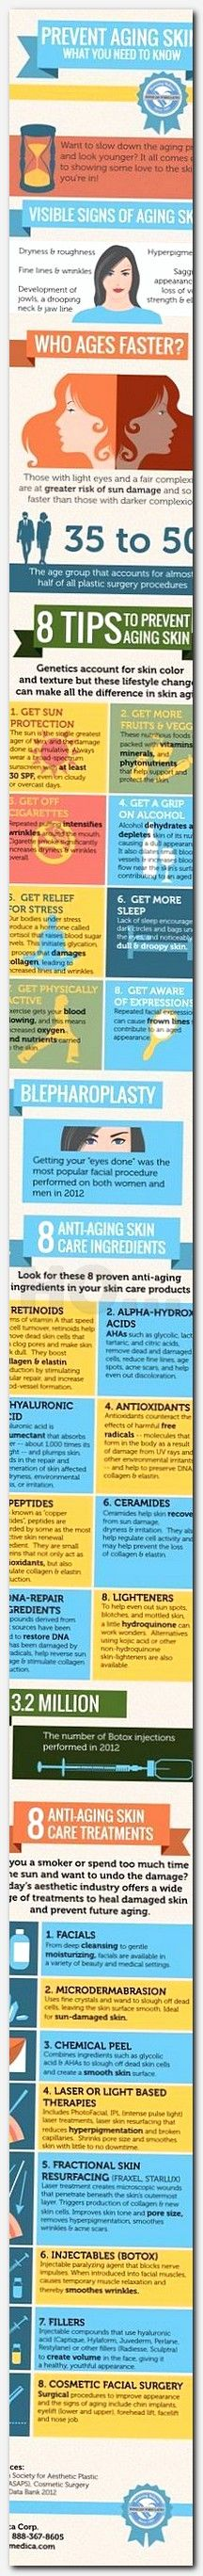 tips to skin care, skin care guide, what products are tested on animals, camera make up download, applying make up tips, makeup makyaj, eye makeup new 2016, trehalose cosmetics, beauty tips for skin and hair, how to put makeup on face, halloween cobweb eye makeup, halloween spider web makeup, 2016 new beauty products, stunning wedding makeup, how to makeup on face, makeup beauty blog